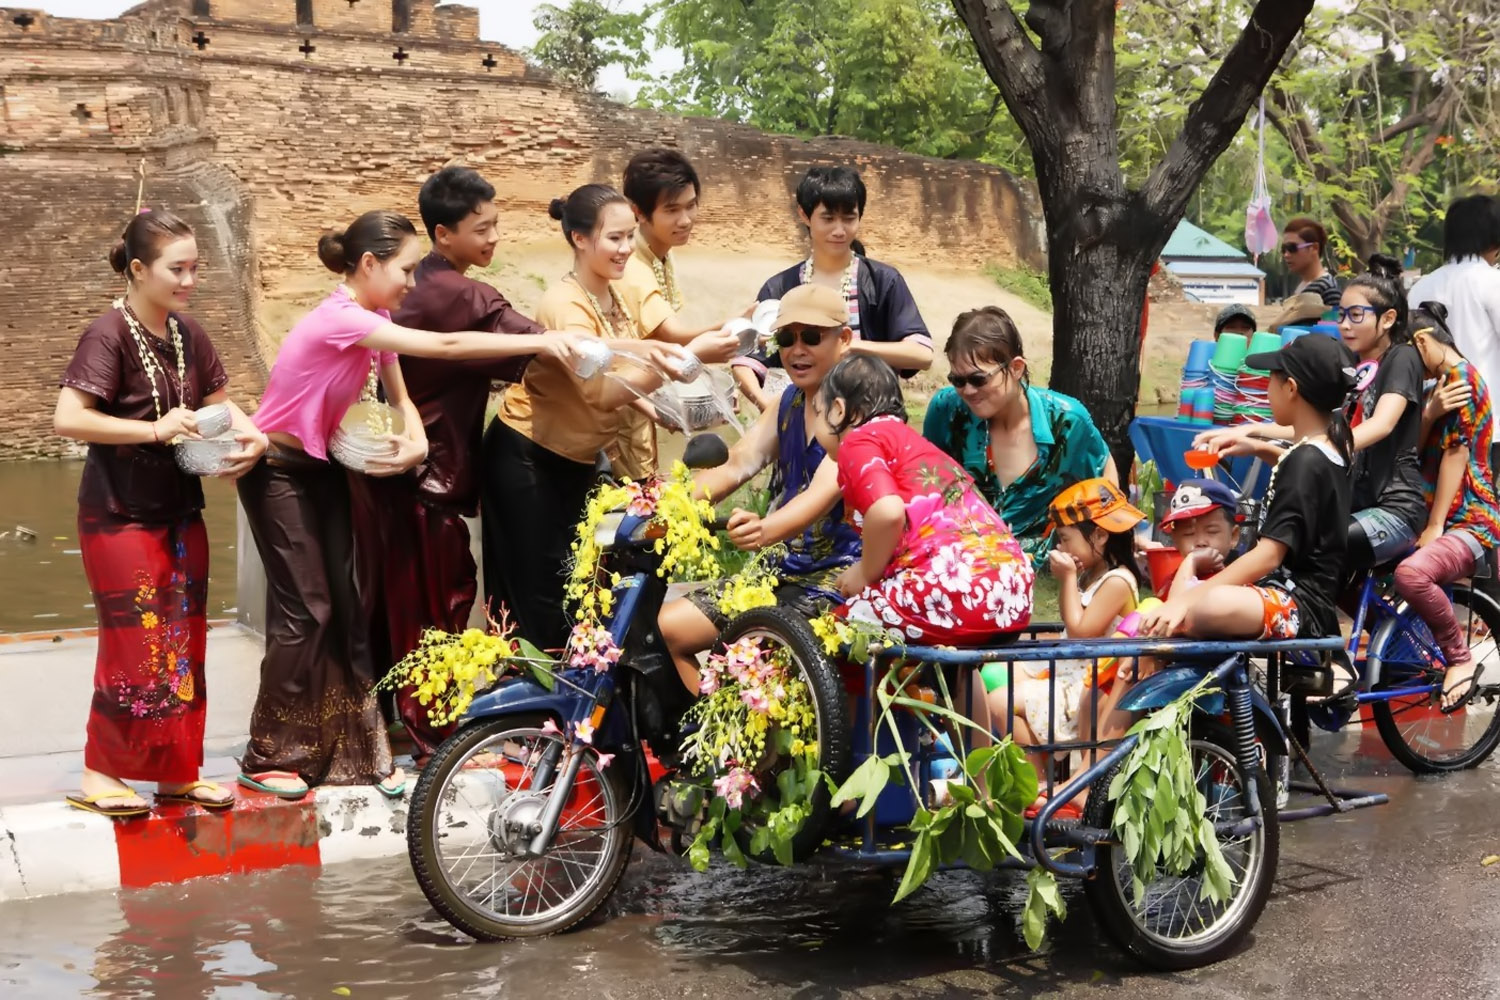 scooping water festival Thailand 32354